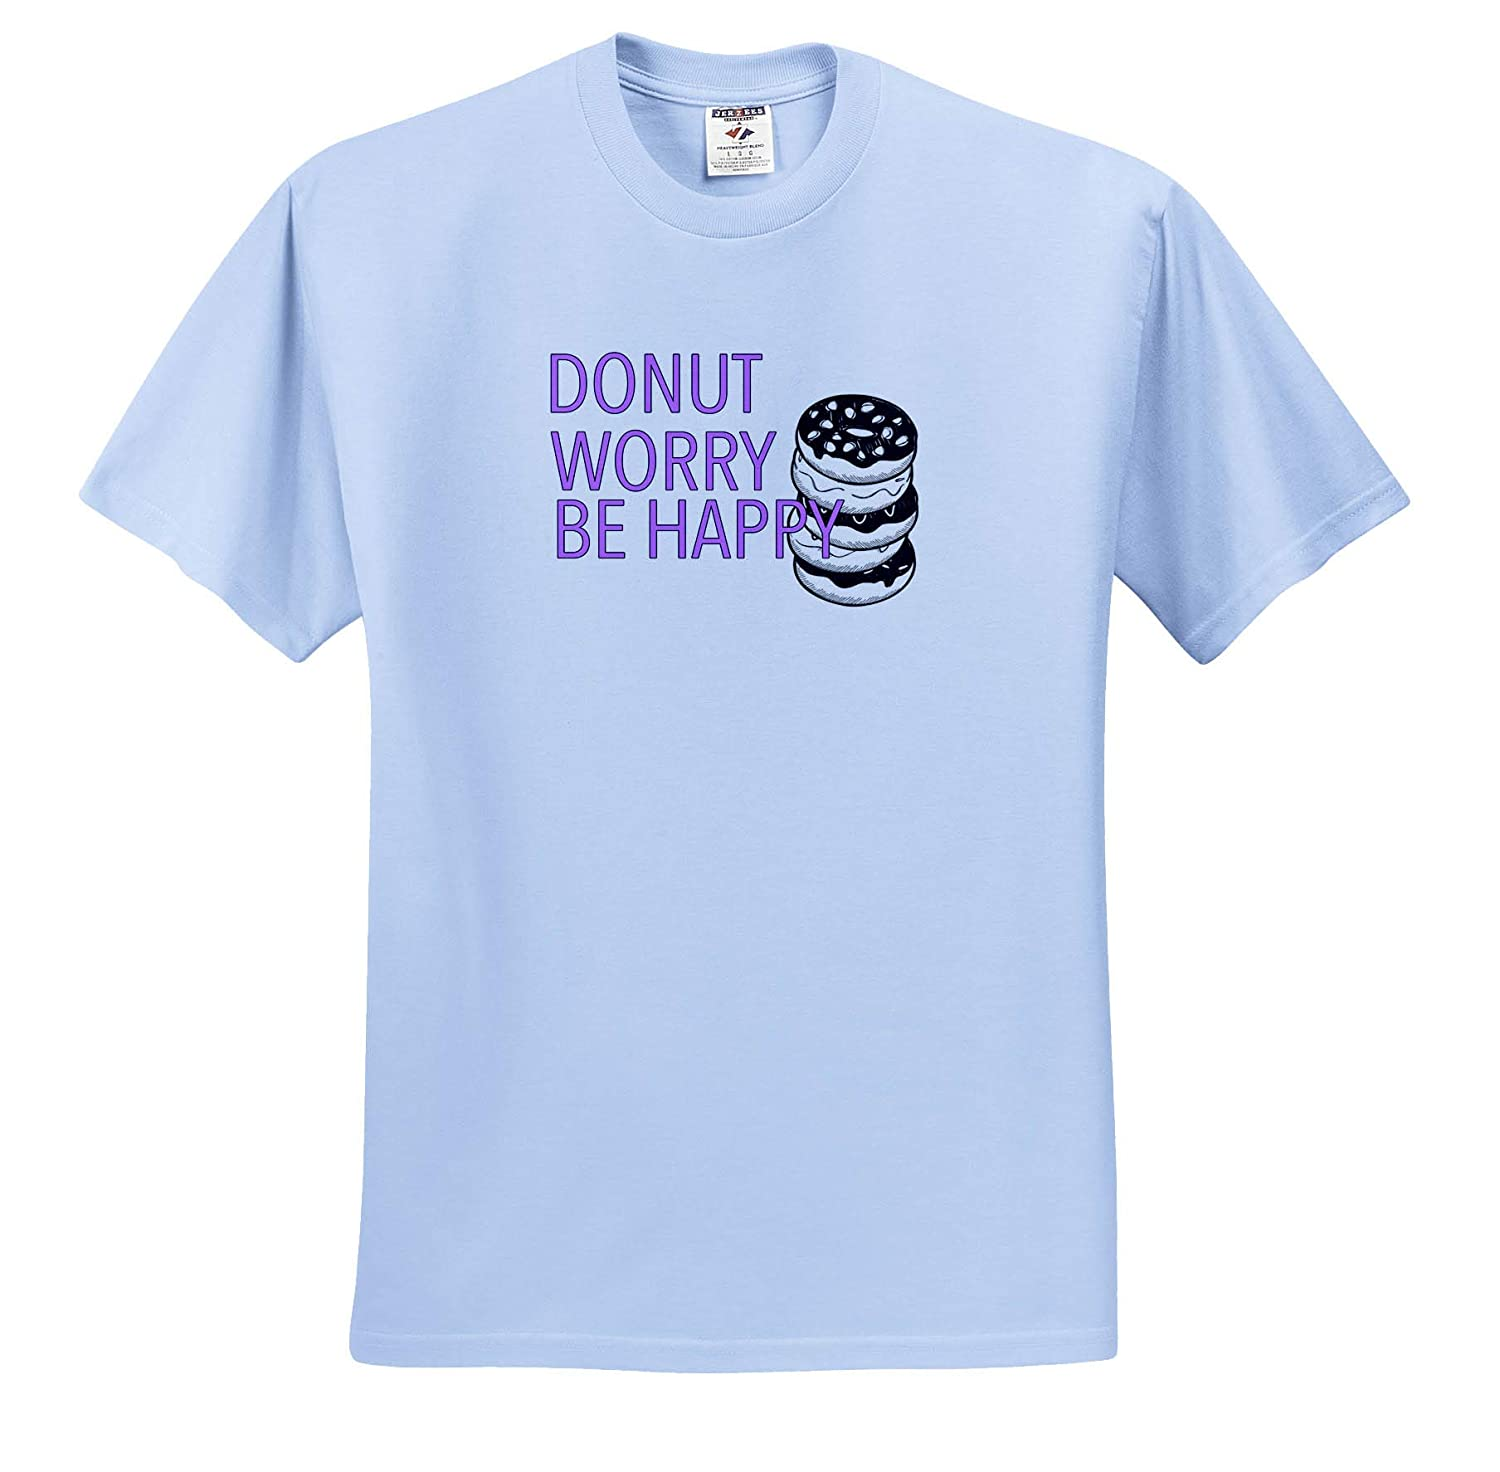 3dRose EvaDane Donut Worry Be Happy Lavender Funny Sayings T-Shirts